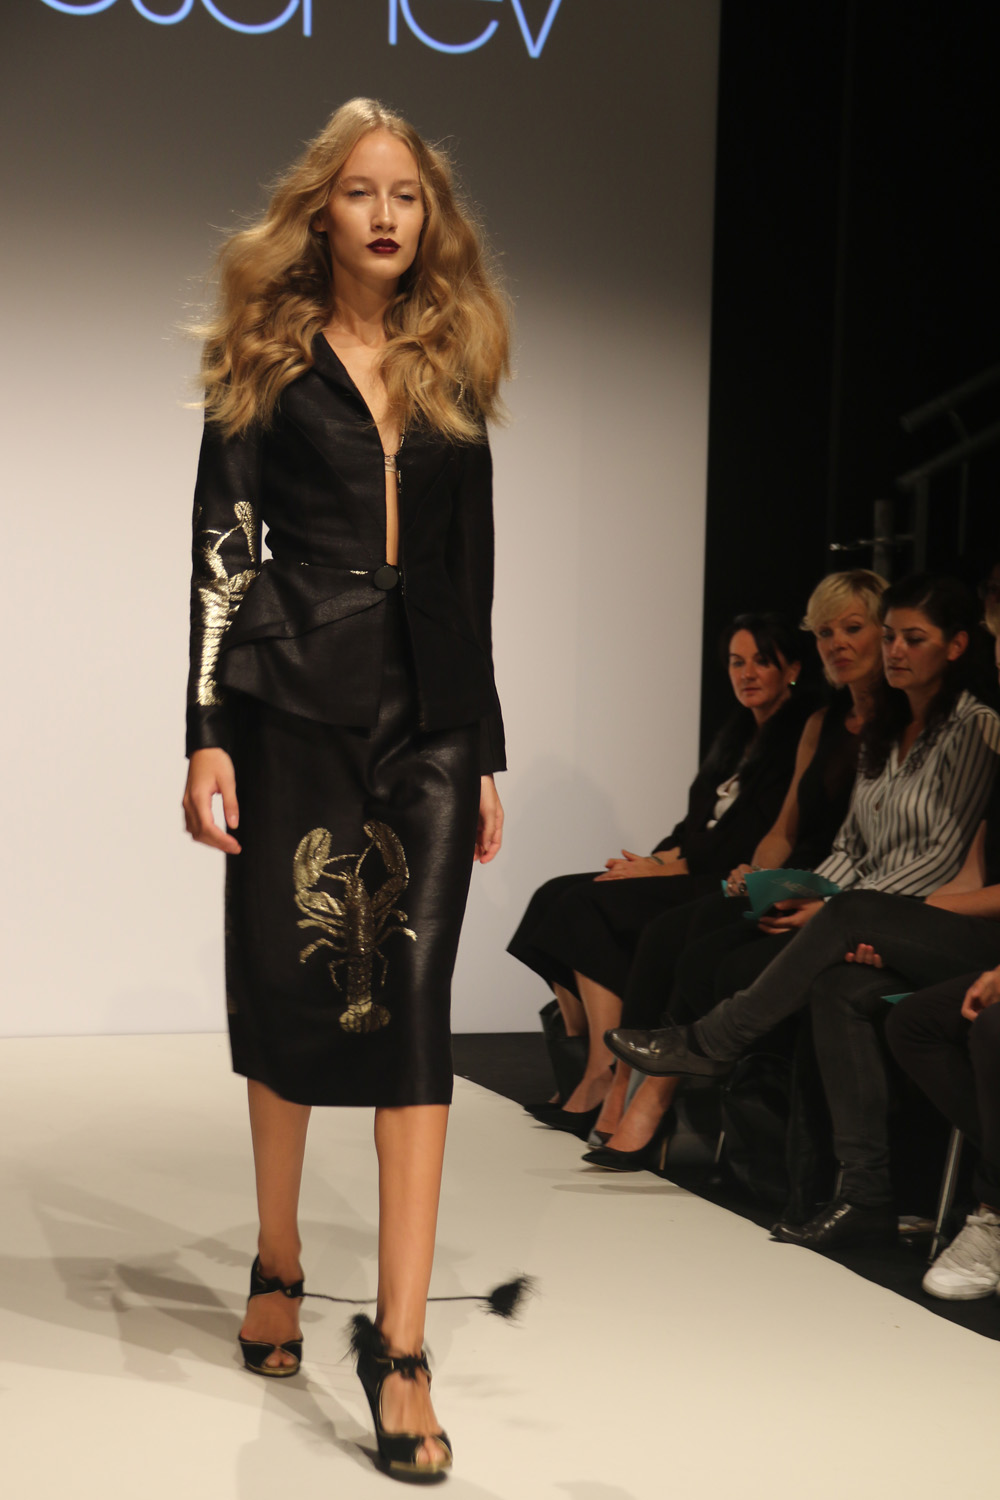 colourclub-mq-vienna-fashion-week-2015-anelia-peschev26